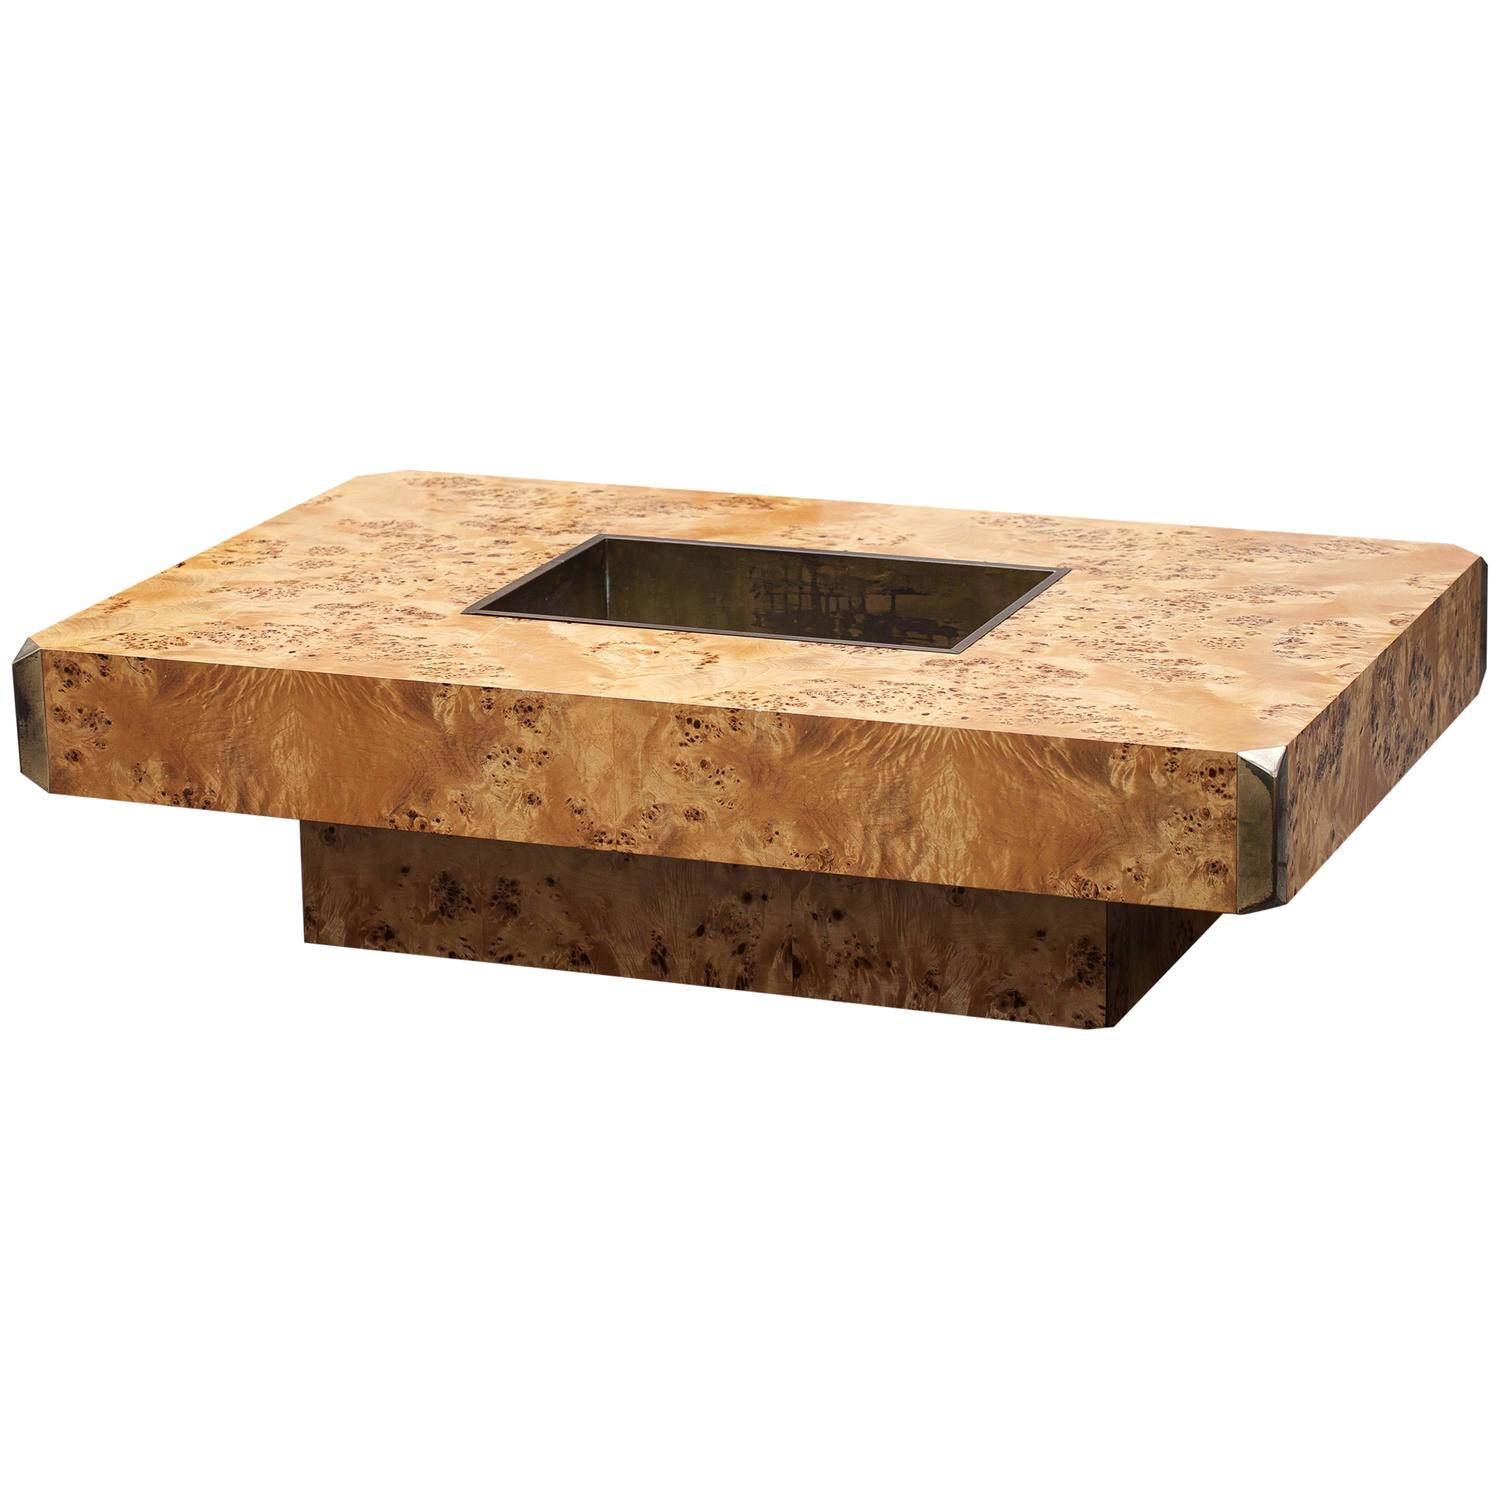 Redwood burl coffee table with irridescant carnival glass crystals at - Massive Burl Wood Coffee Table Image 3 Pictures To Pin On